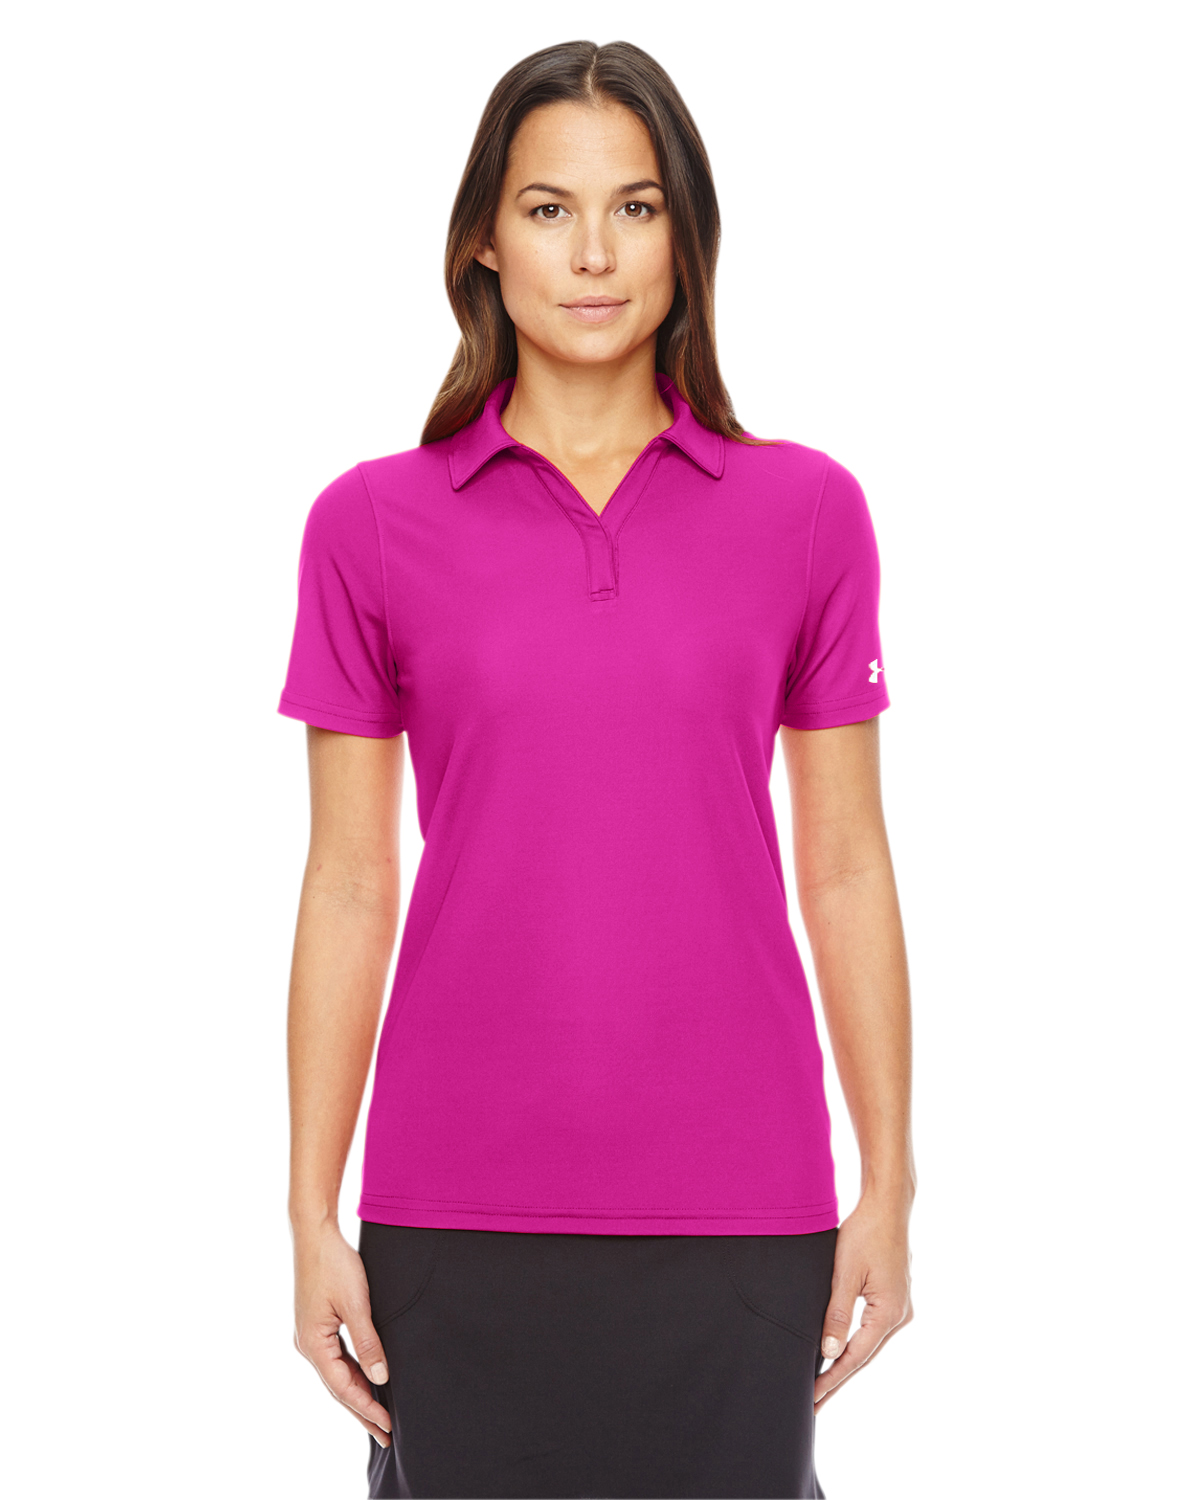 Under Armour 1261606- Ladies' Corp Performance Polo